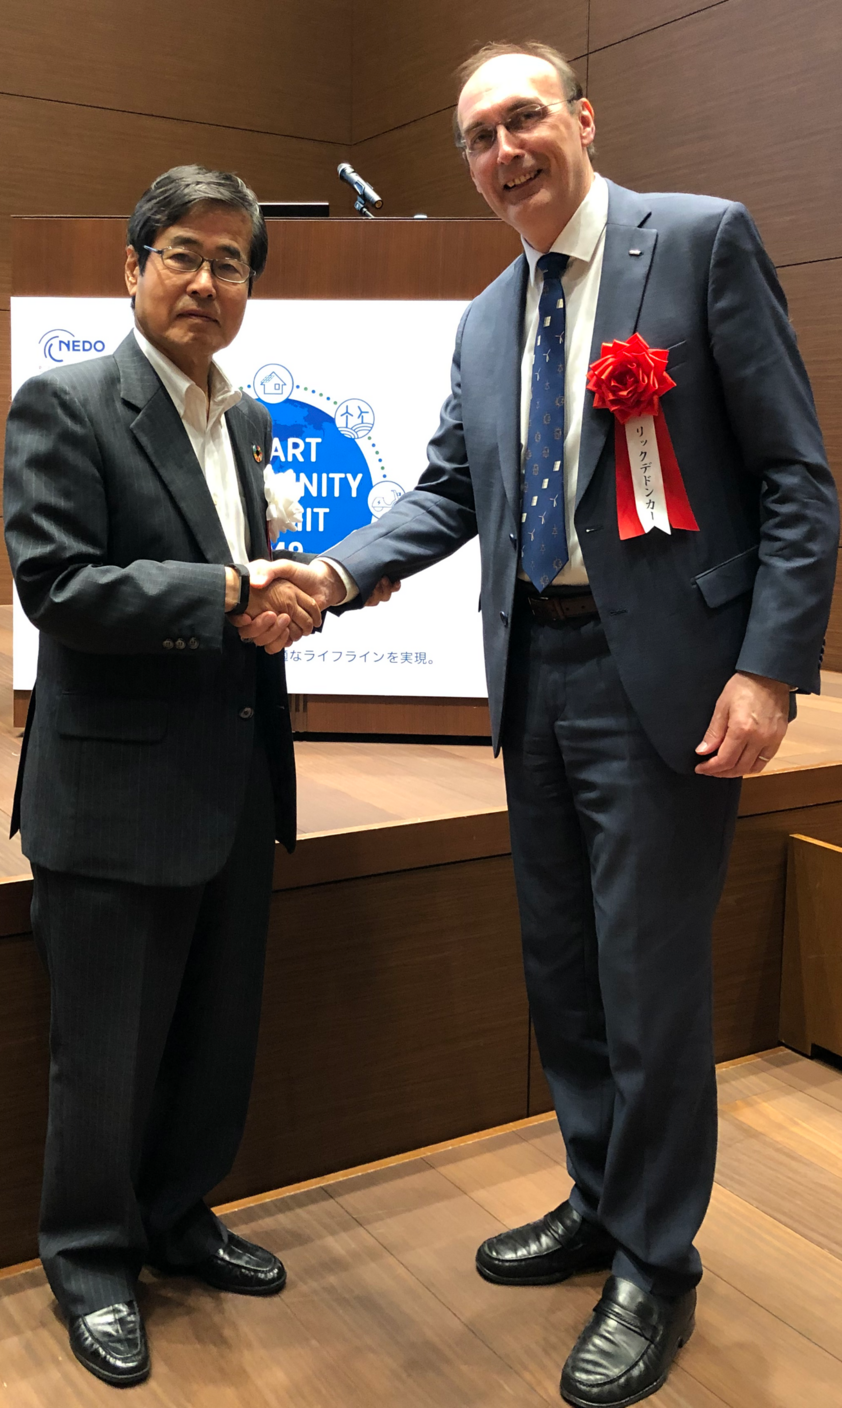 Mr. Hiroaki Ishizuka, Chairman NEDO, thanks Prof. De Doncker for his contribution to the Smart Communities Summit.